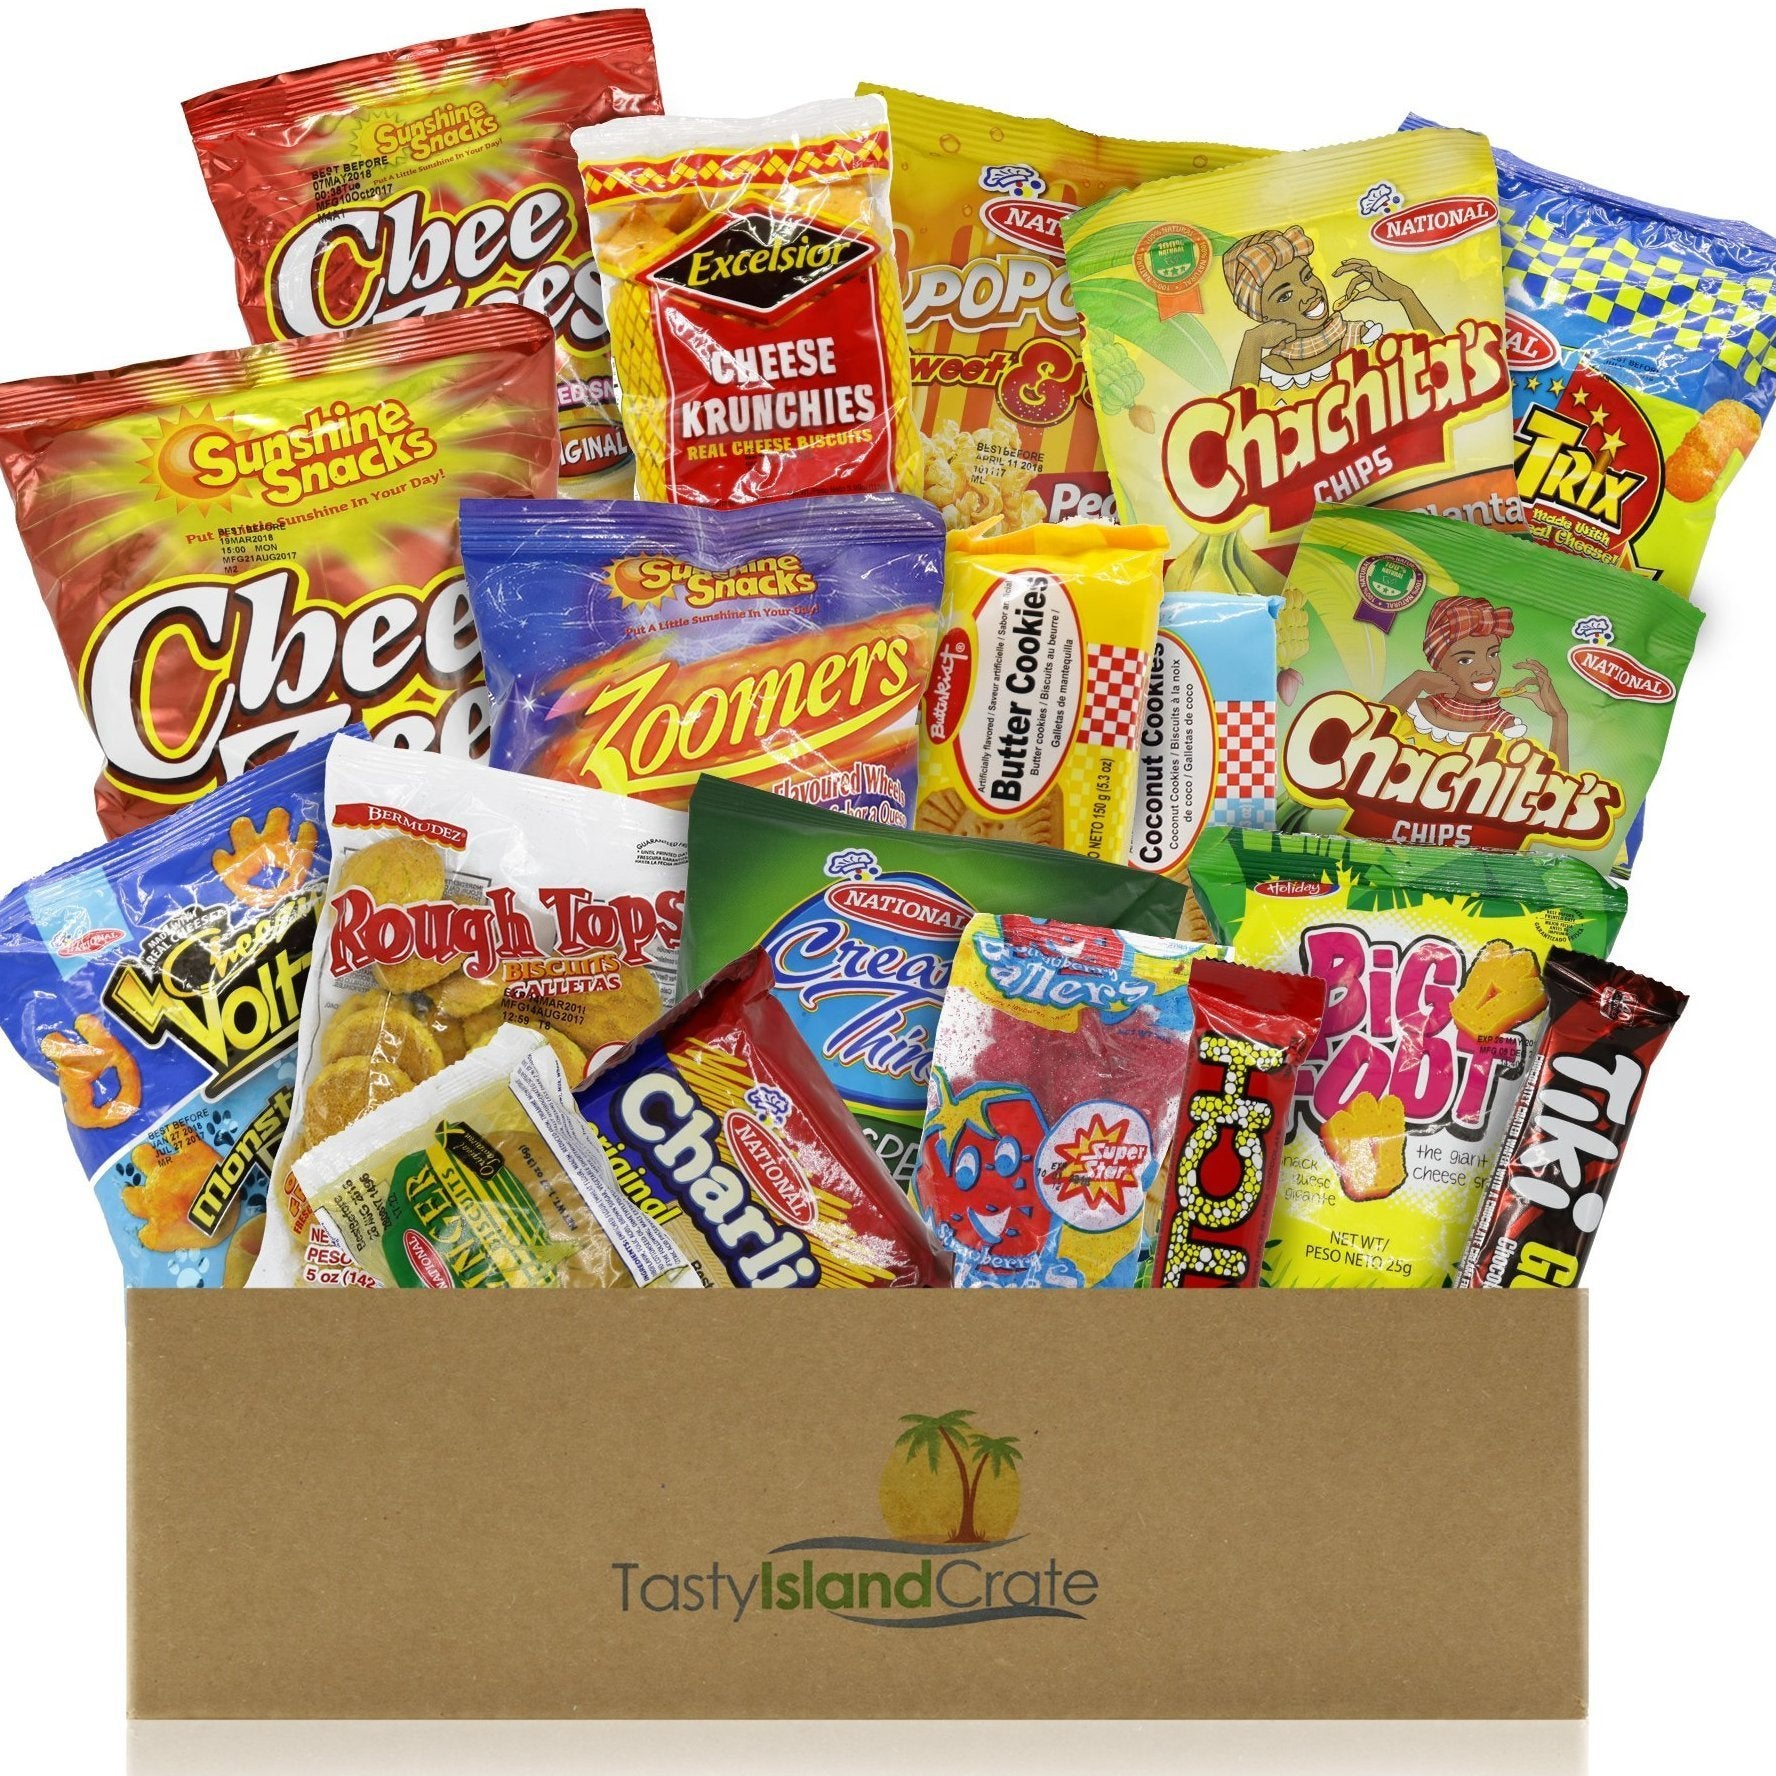 jumbo caribbean snack crate from Tastyislandcrate